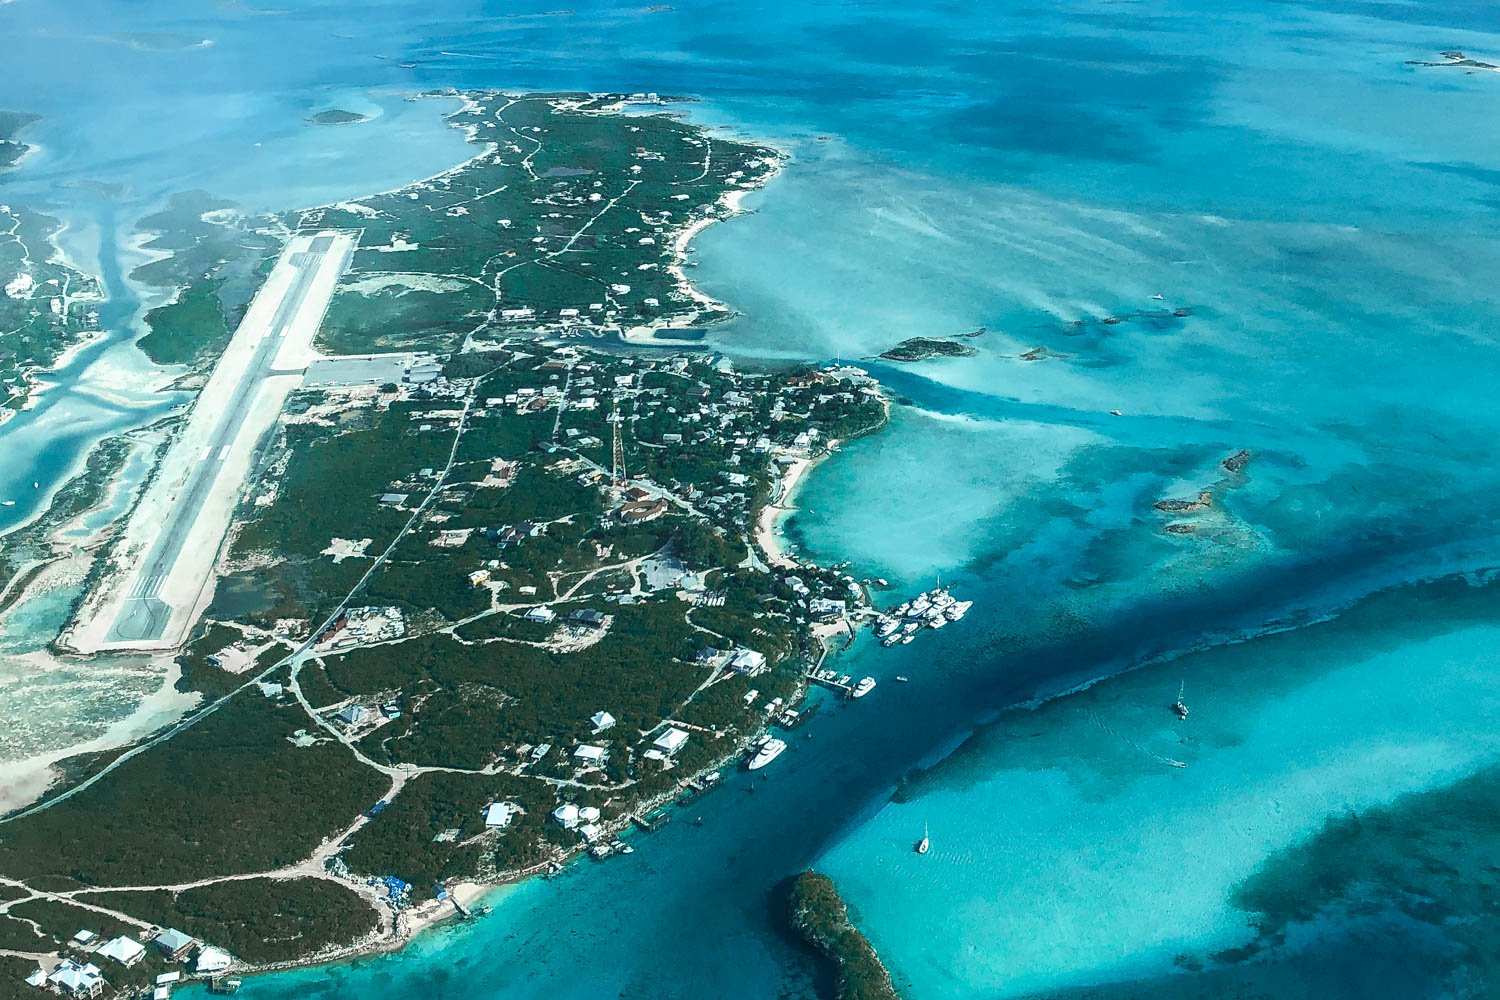 Staniel Cay Bahamas aerial photo of the island including the Staniel Cay airport and Staniel Cay Yacht Club